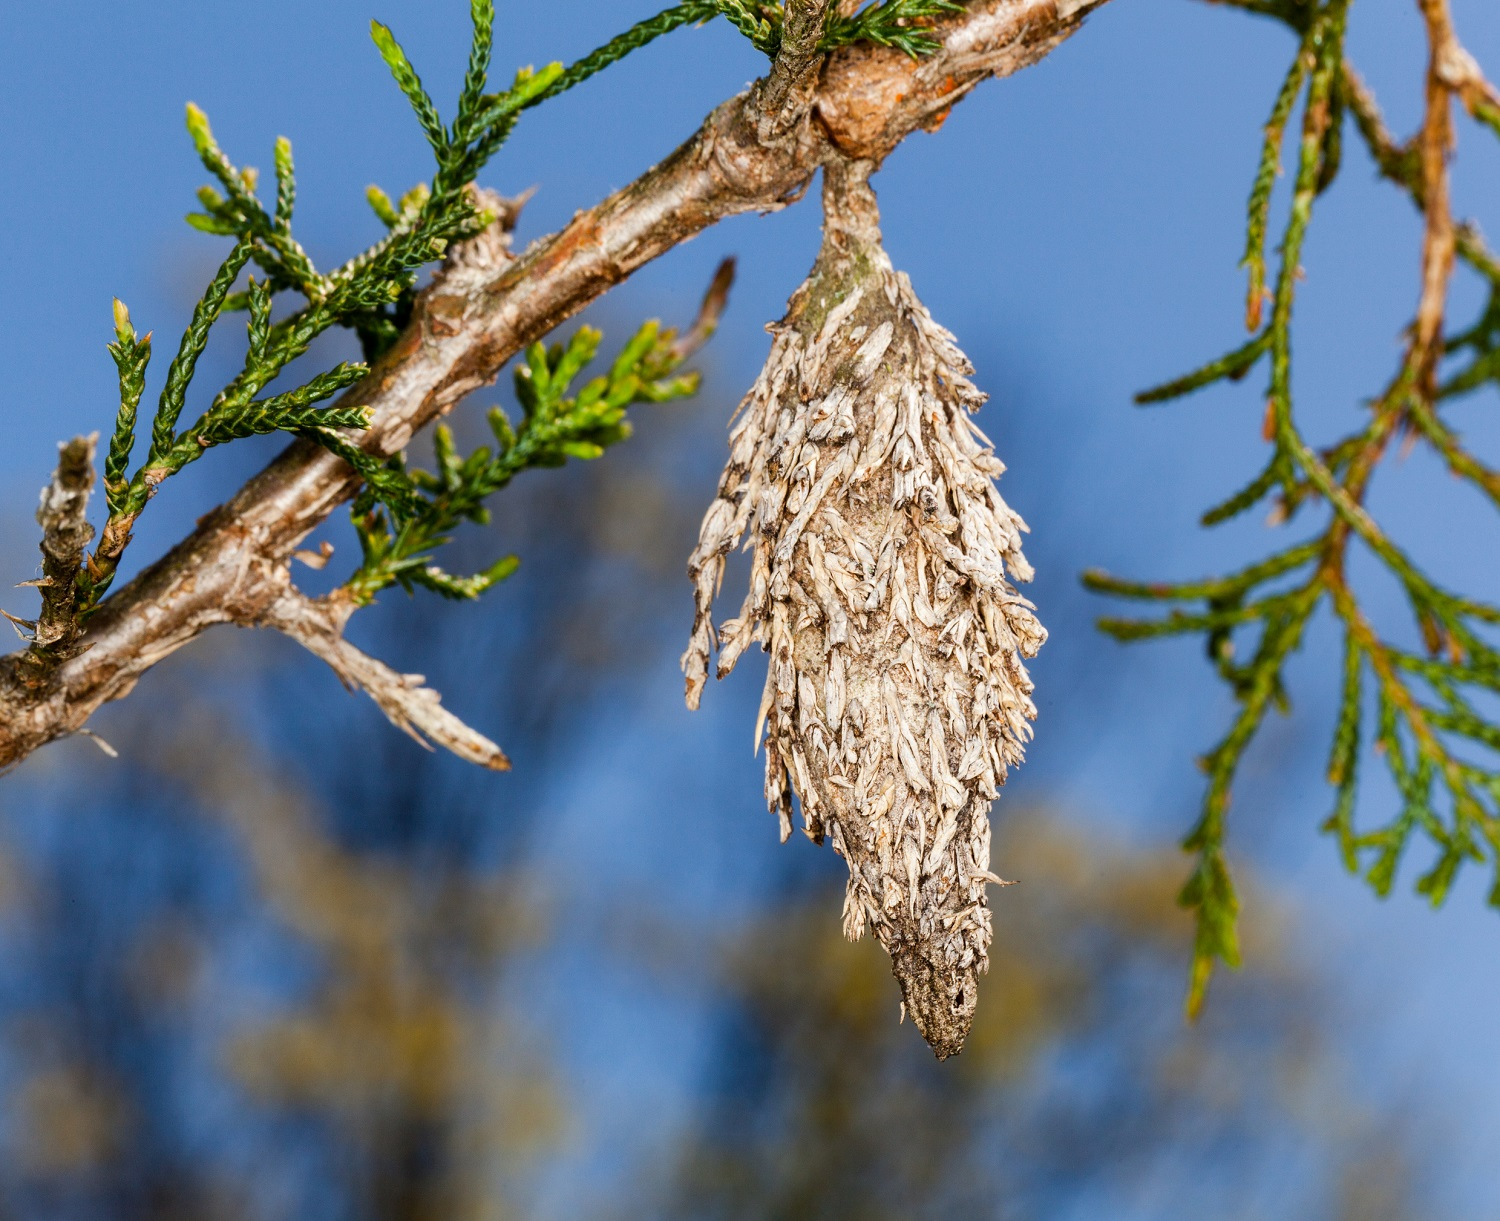 Evergreen Bagworm on tree branch